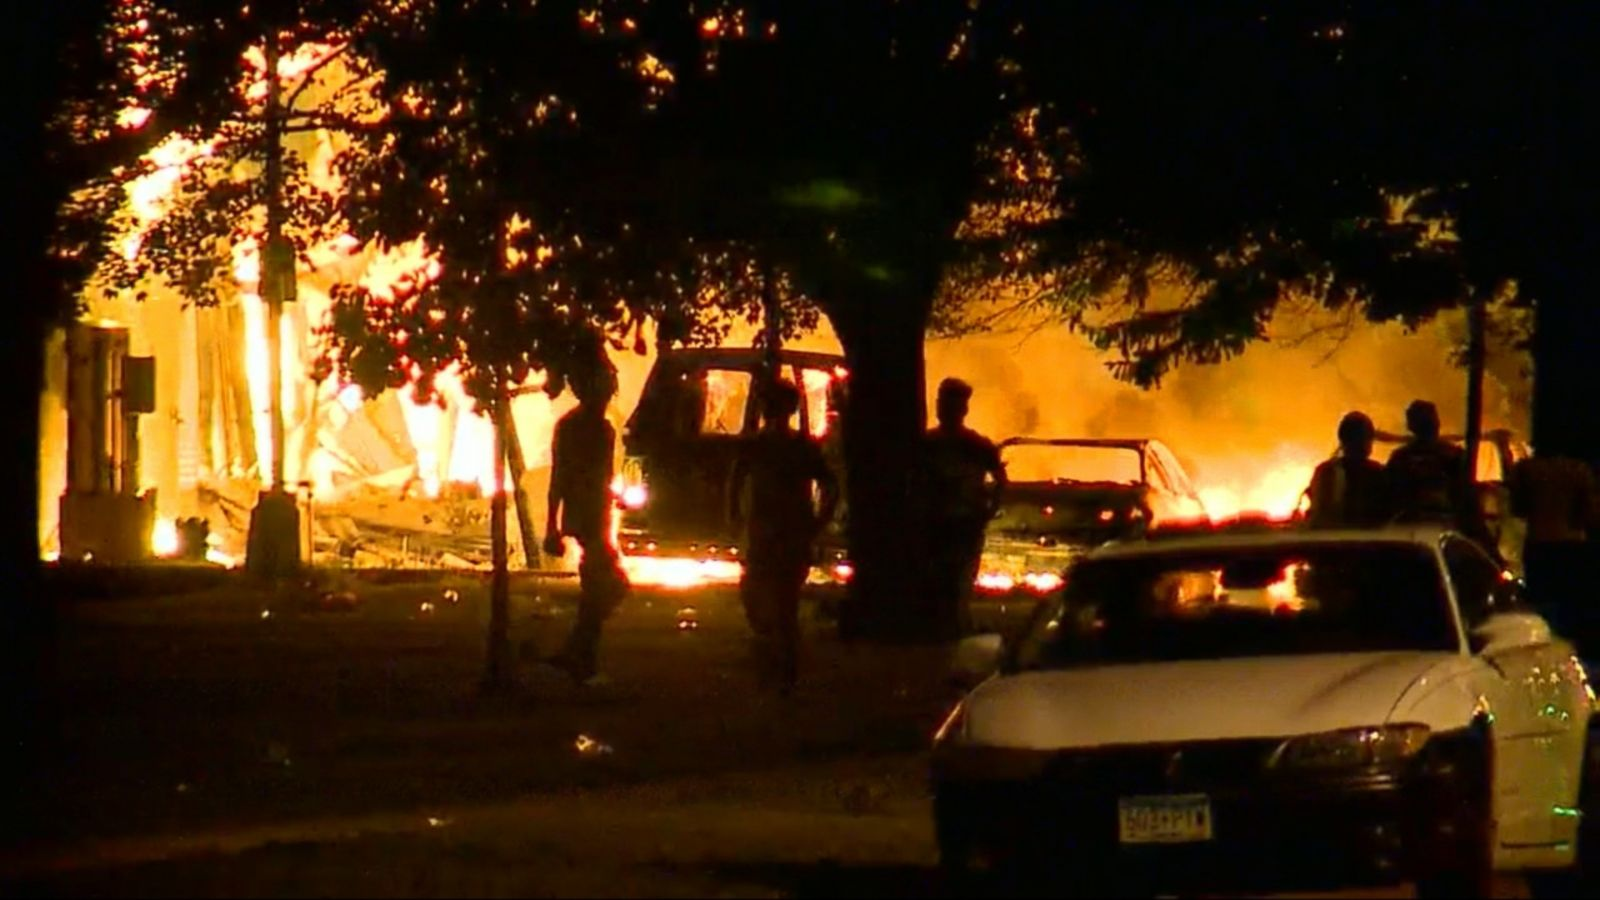 VIDEO: Milwaukee police say they are battling continued unrest early Monday morning, making multiple arrests and rushing one shooting victim and at least one officer to the hospital in the second night of violence following a fatal police shooting.